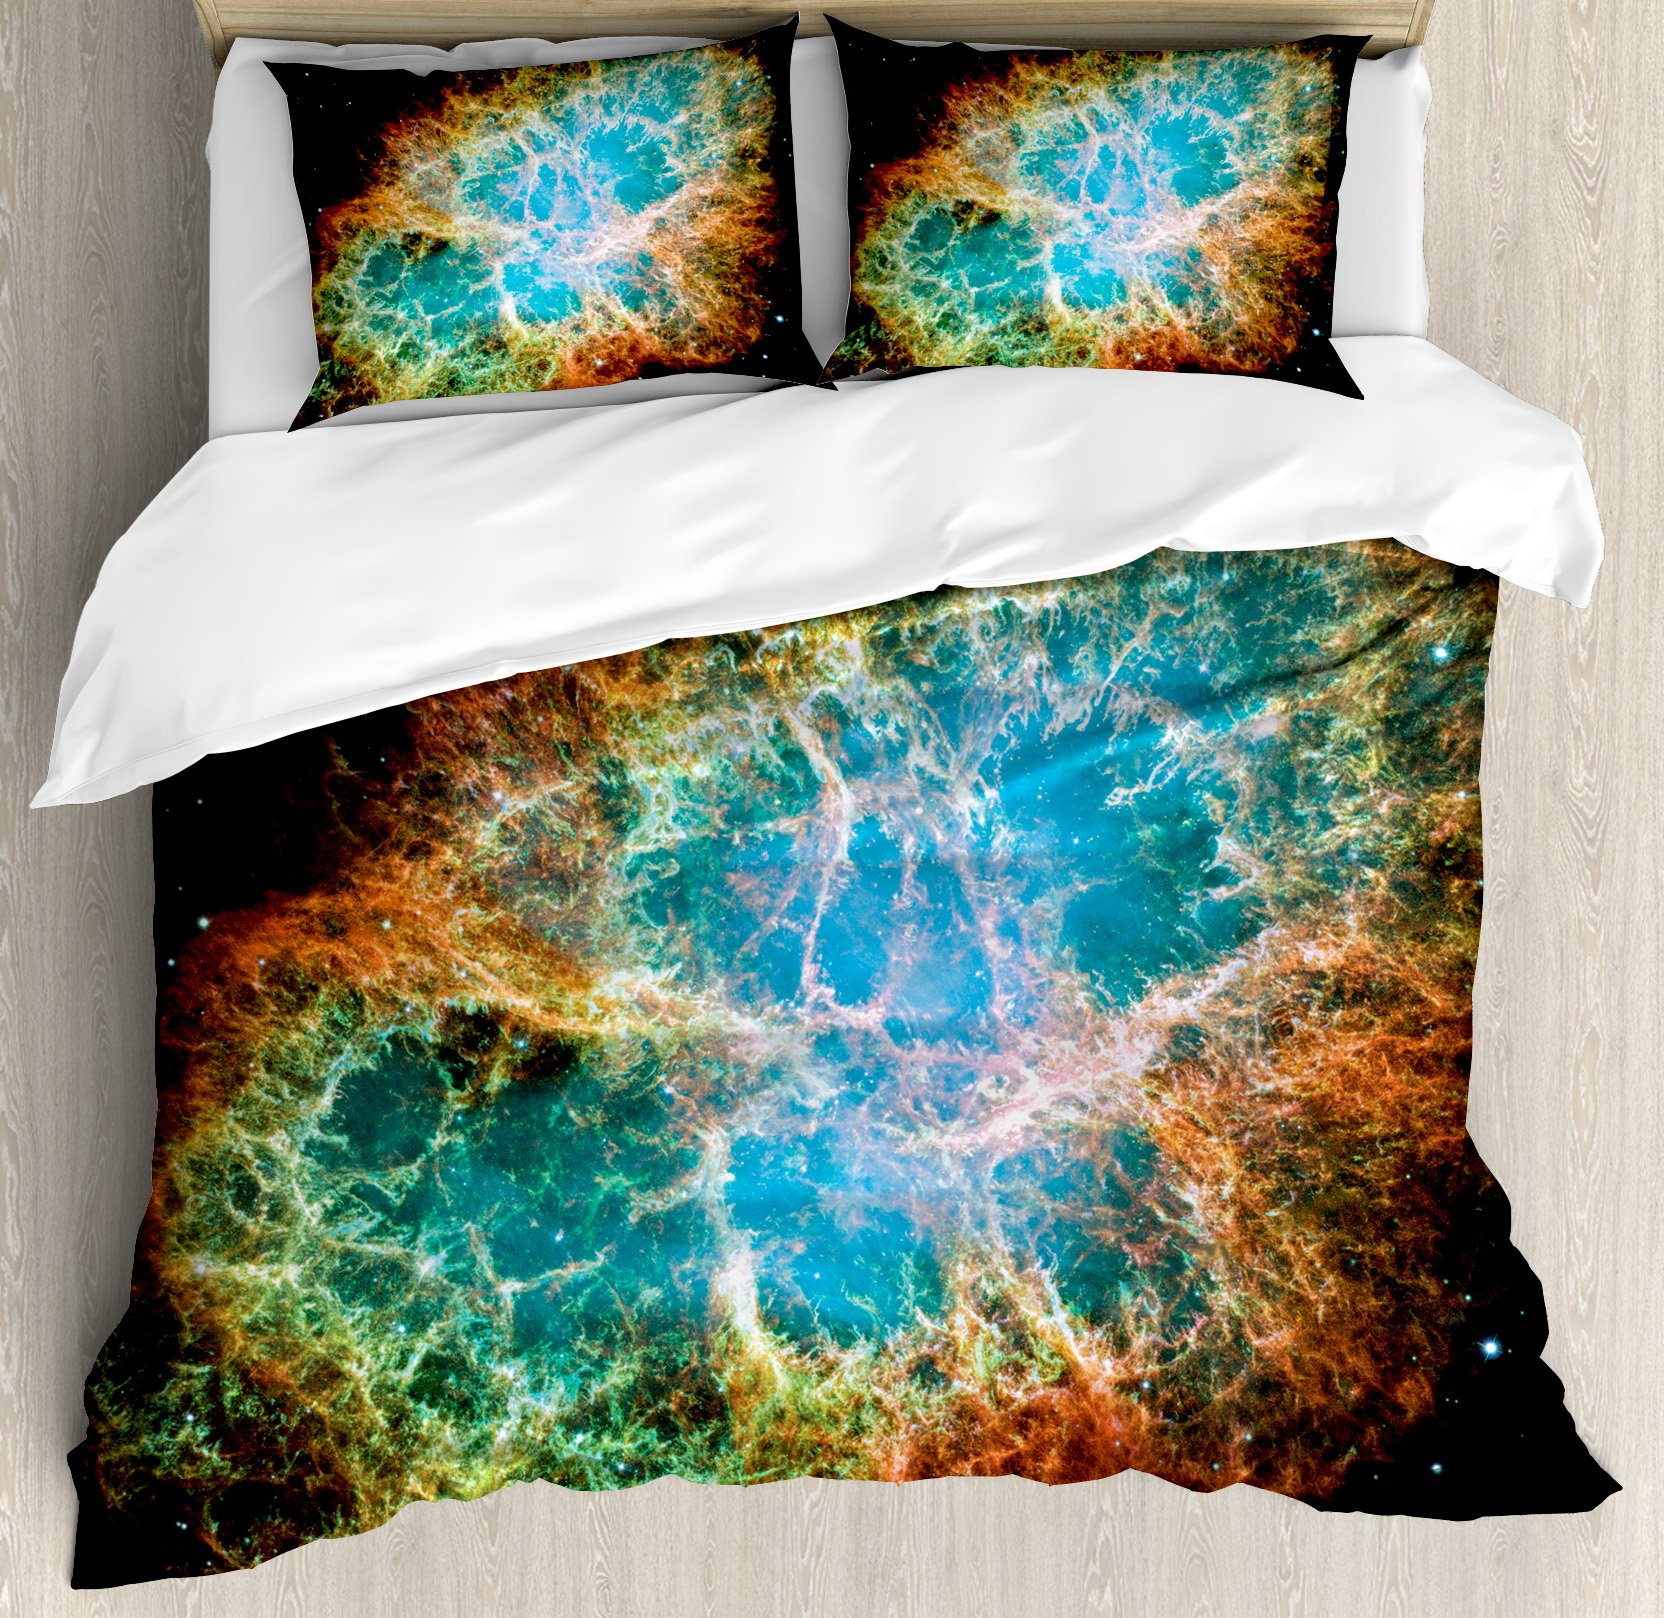 Ambesonne Space Decorations Duvet Cover Set by, Image of Crab Nebula in Early Age Clean Version of Original Print Home Decor, 3 Piece Bedding Set with Pillow Shams, Queen/Full, Black Teal Orange